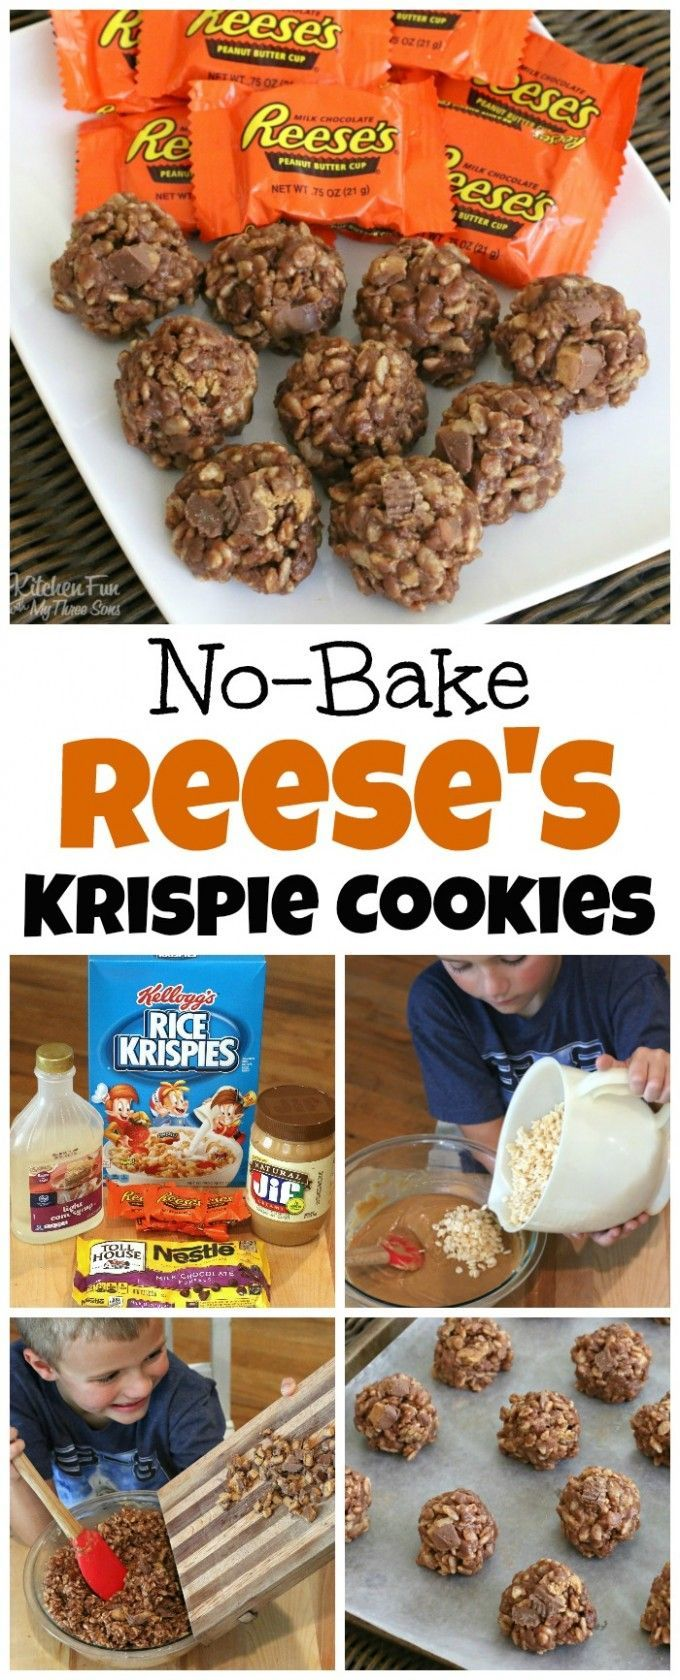 Reese's Cookies - No Bake Peanut Butter & Chocolate Rice Krispies Treats Recipe - Chocolate lovers dream dessert!